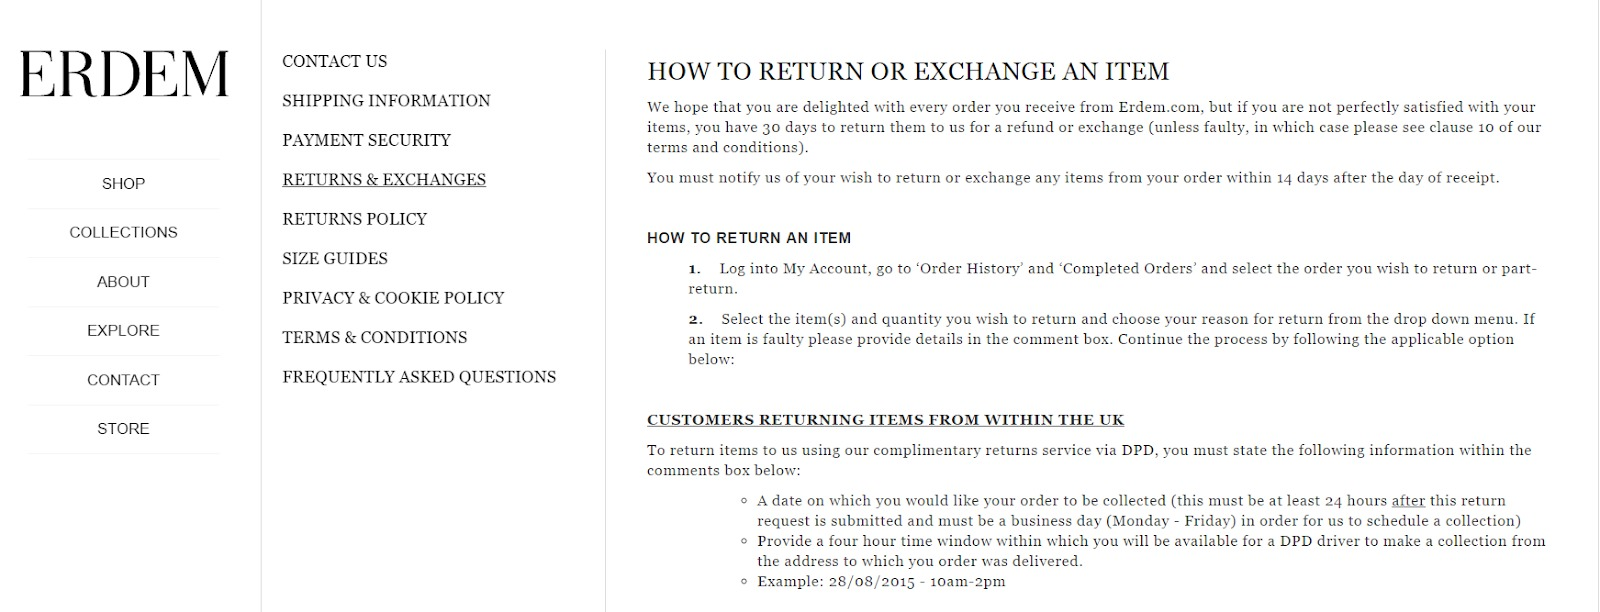 How To Write An Ecommerce Return Policy (Template + Real Examples)